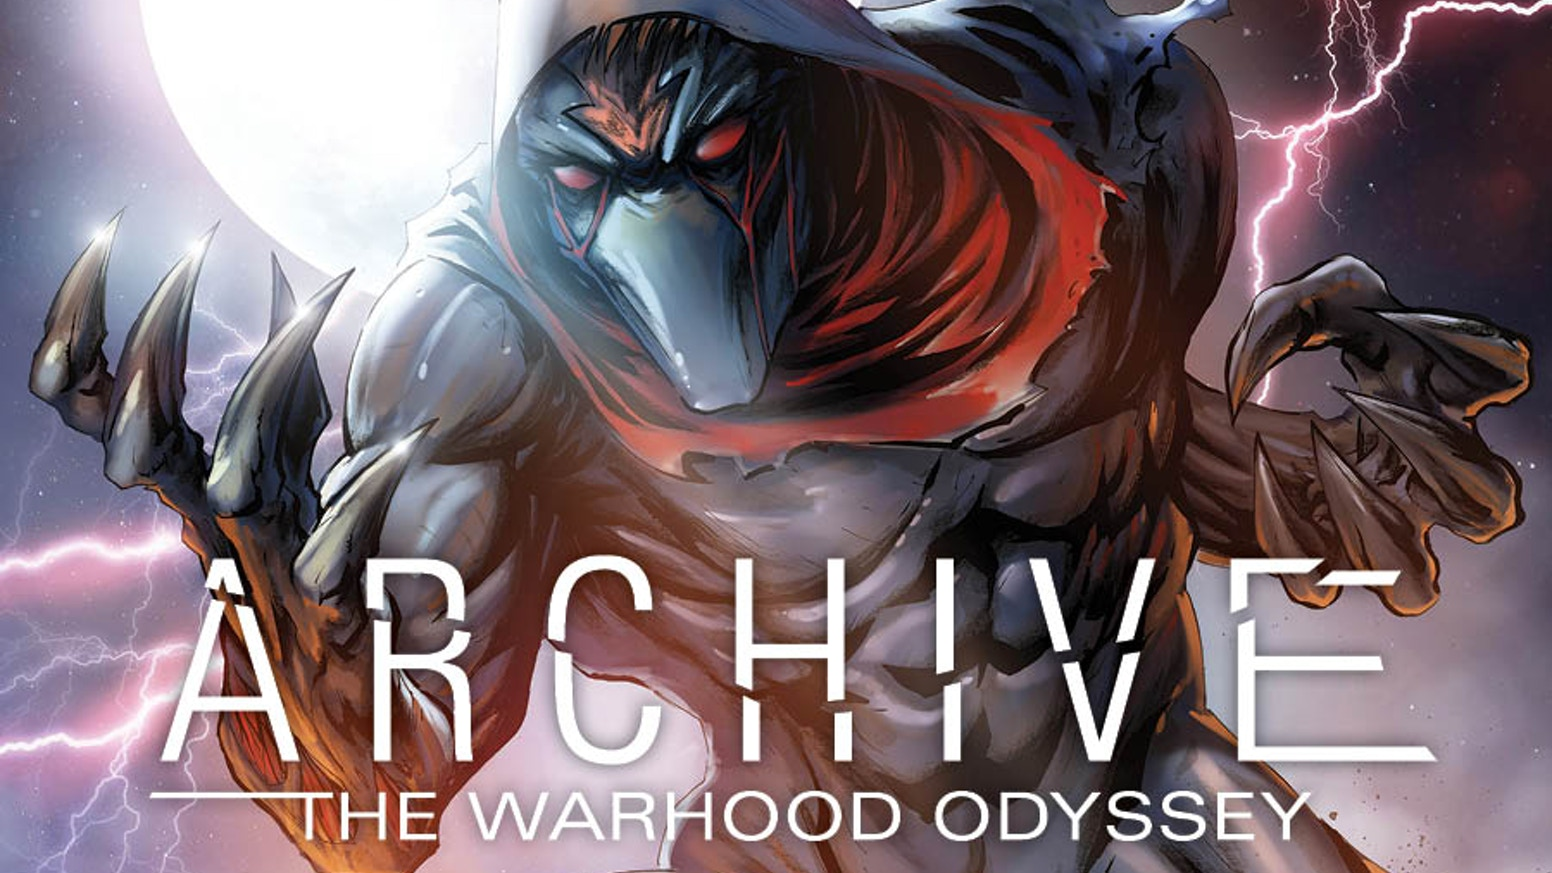 ARCHIVE The WarHood Volume TWO!  An unlikely hero is forced to use a futuristic weapon against its creator to save a dying planet.